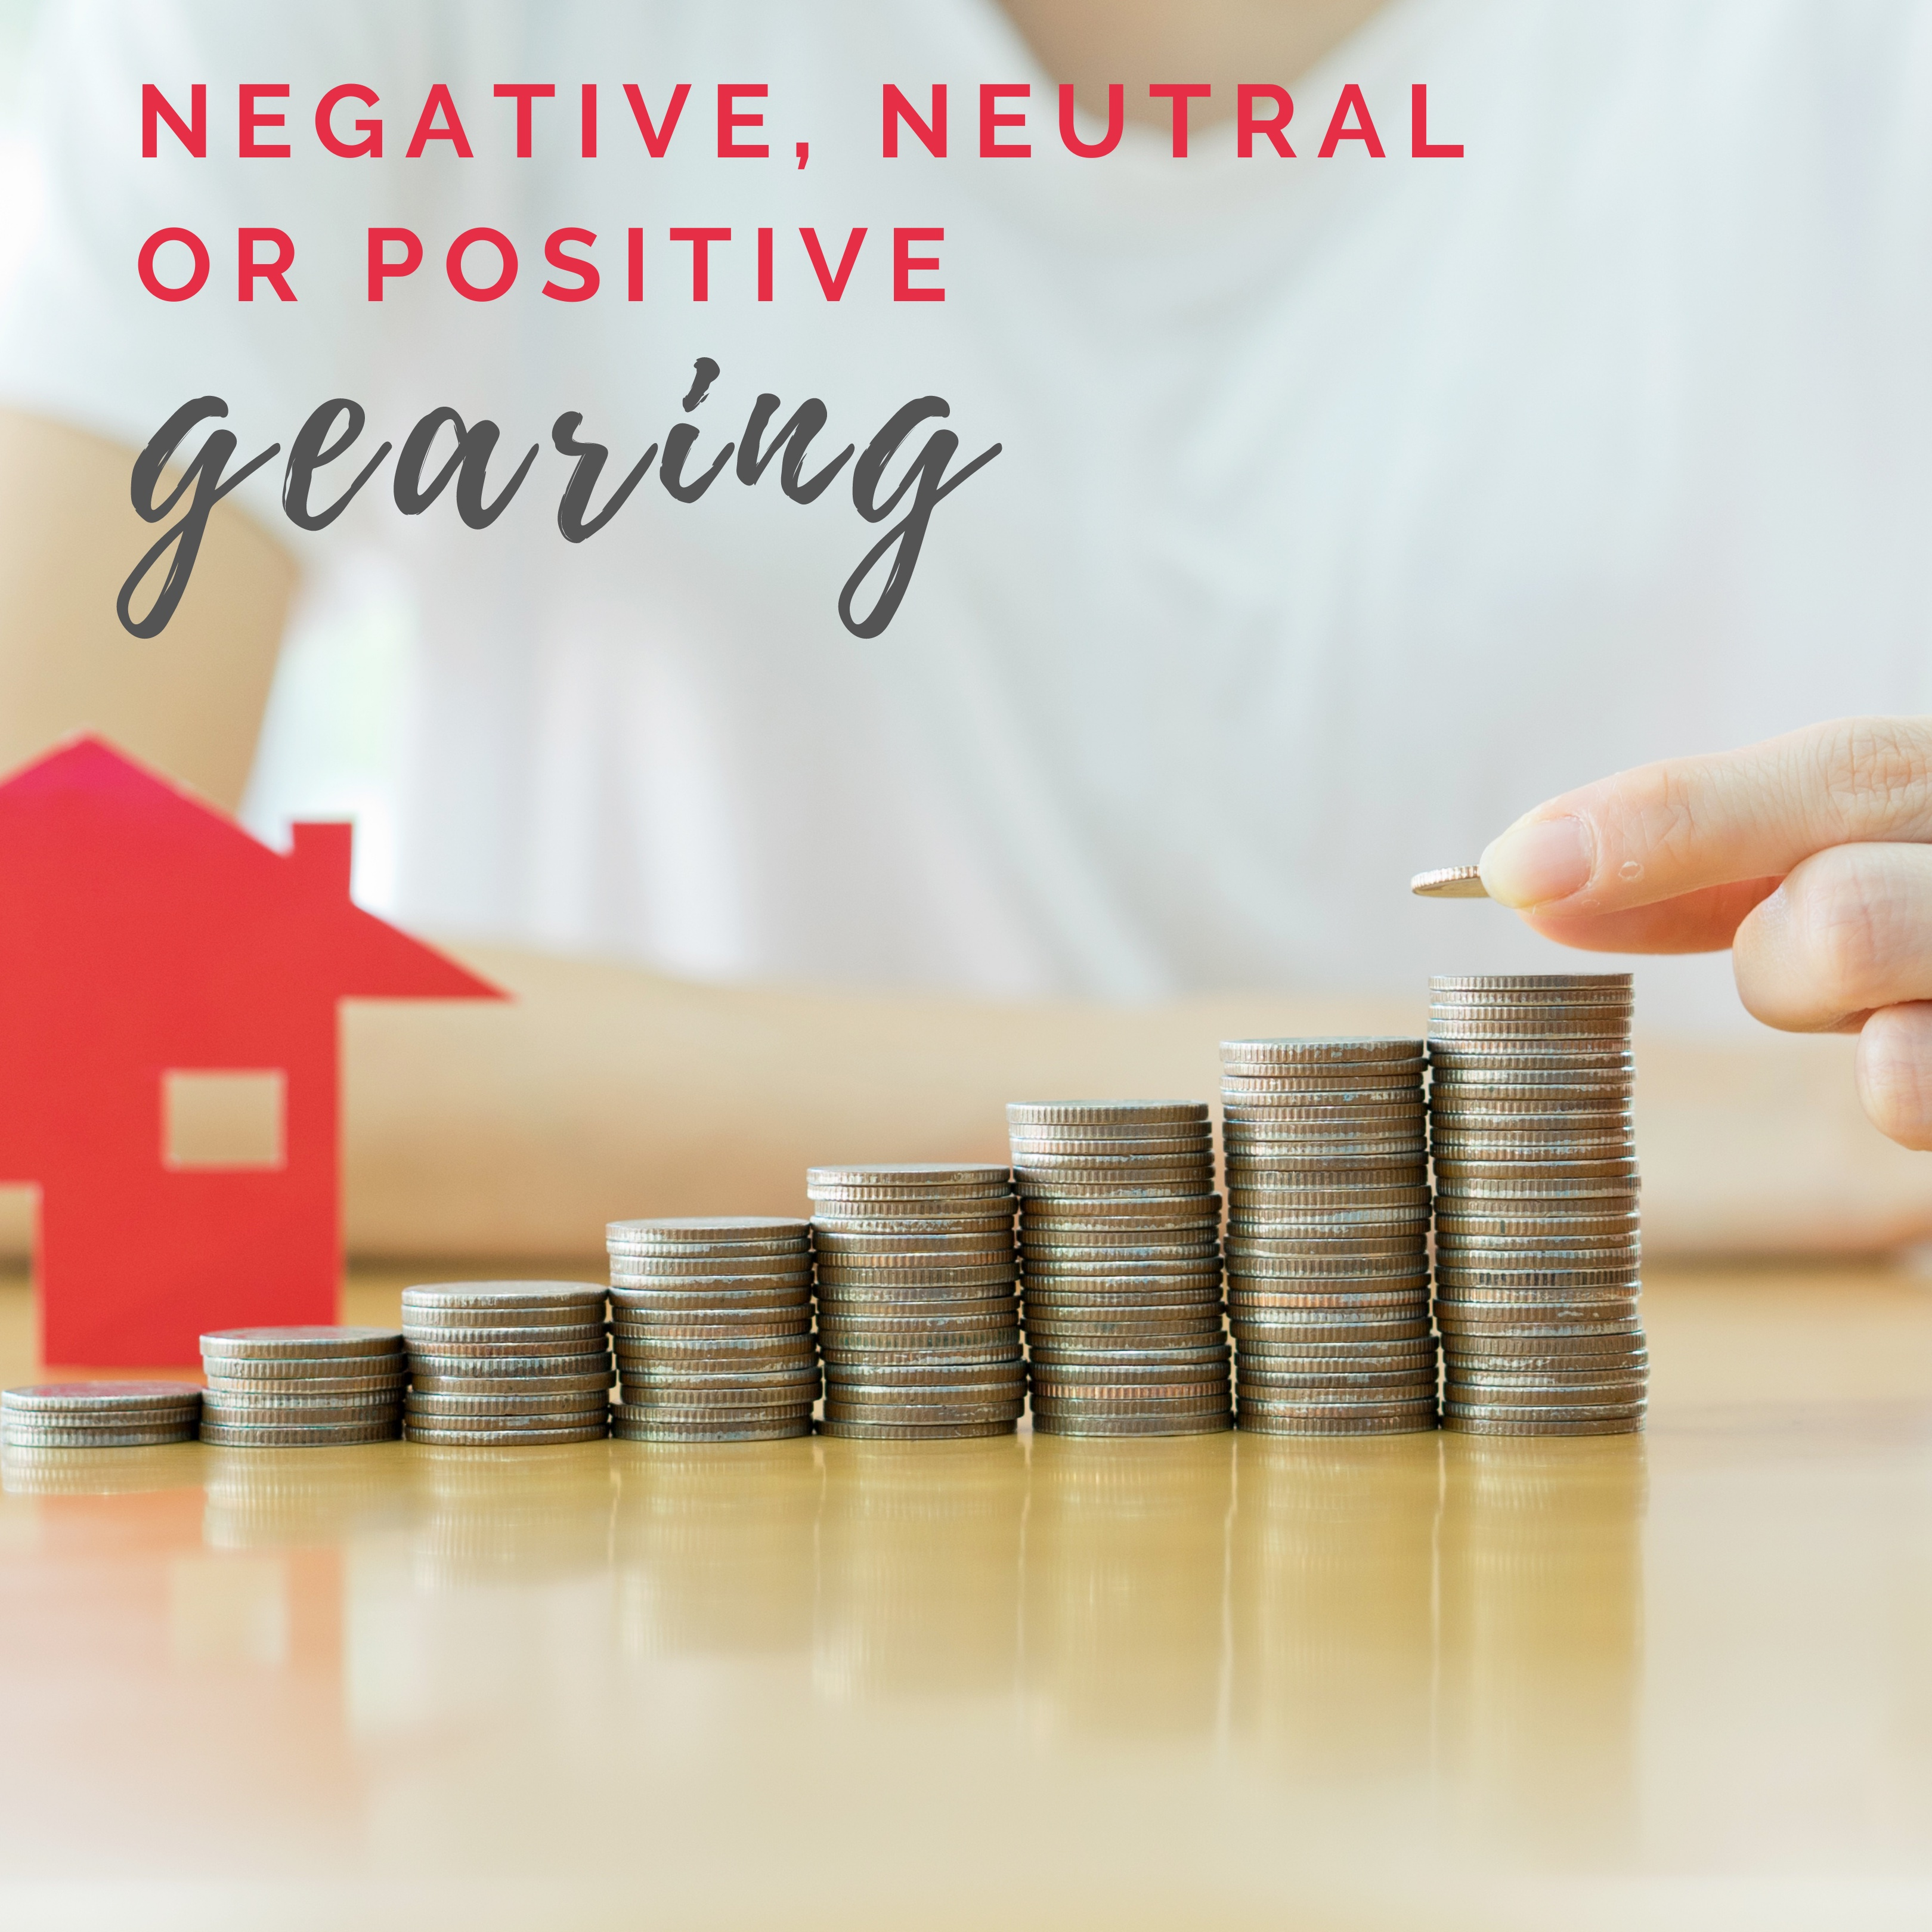 Negative, neutral, positive gearing: Which is best?